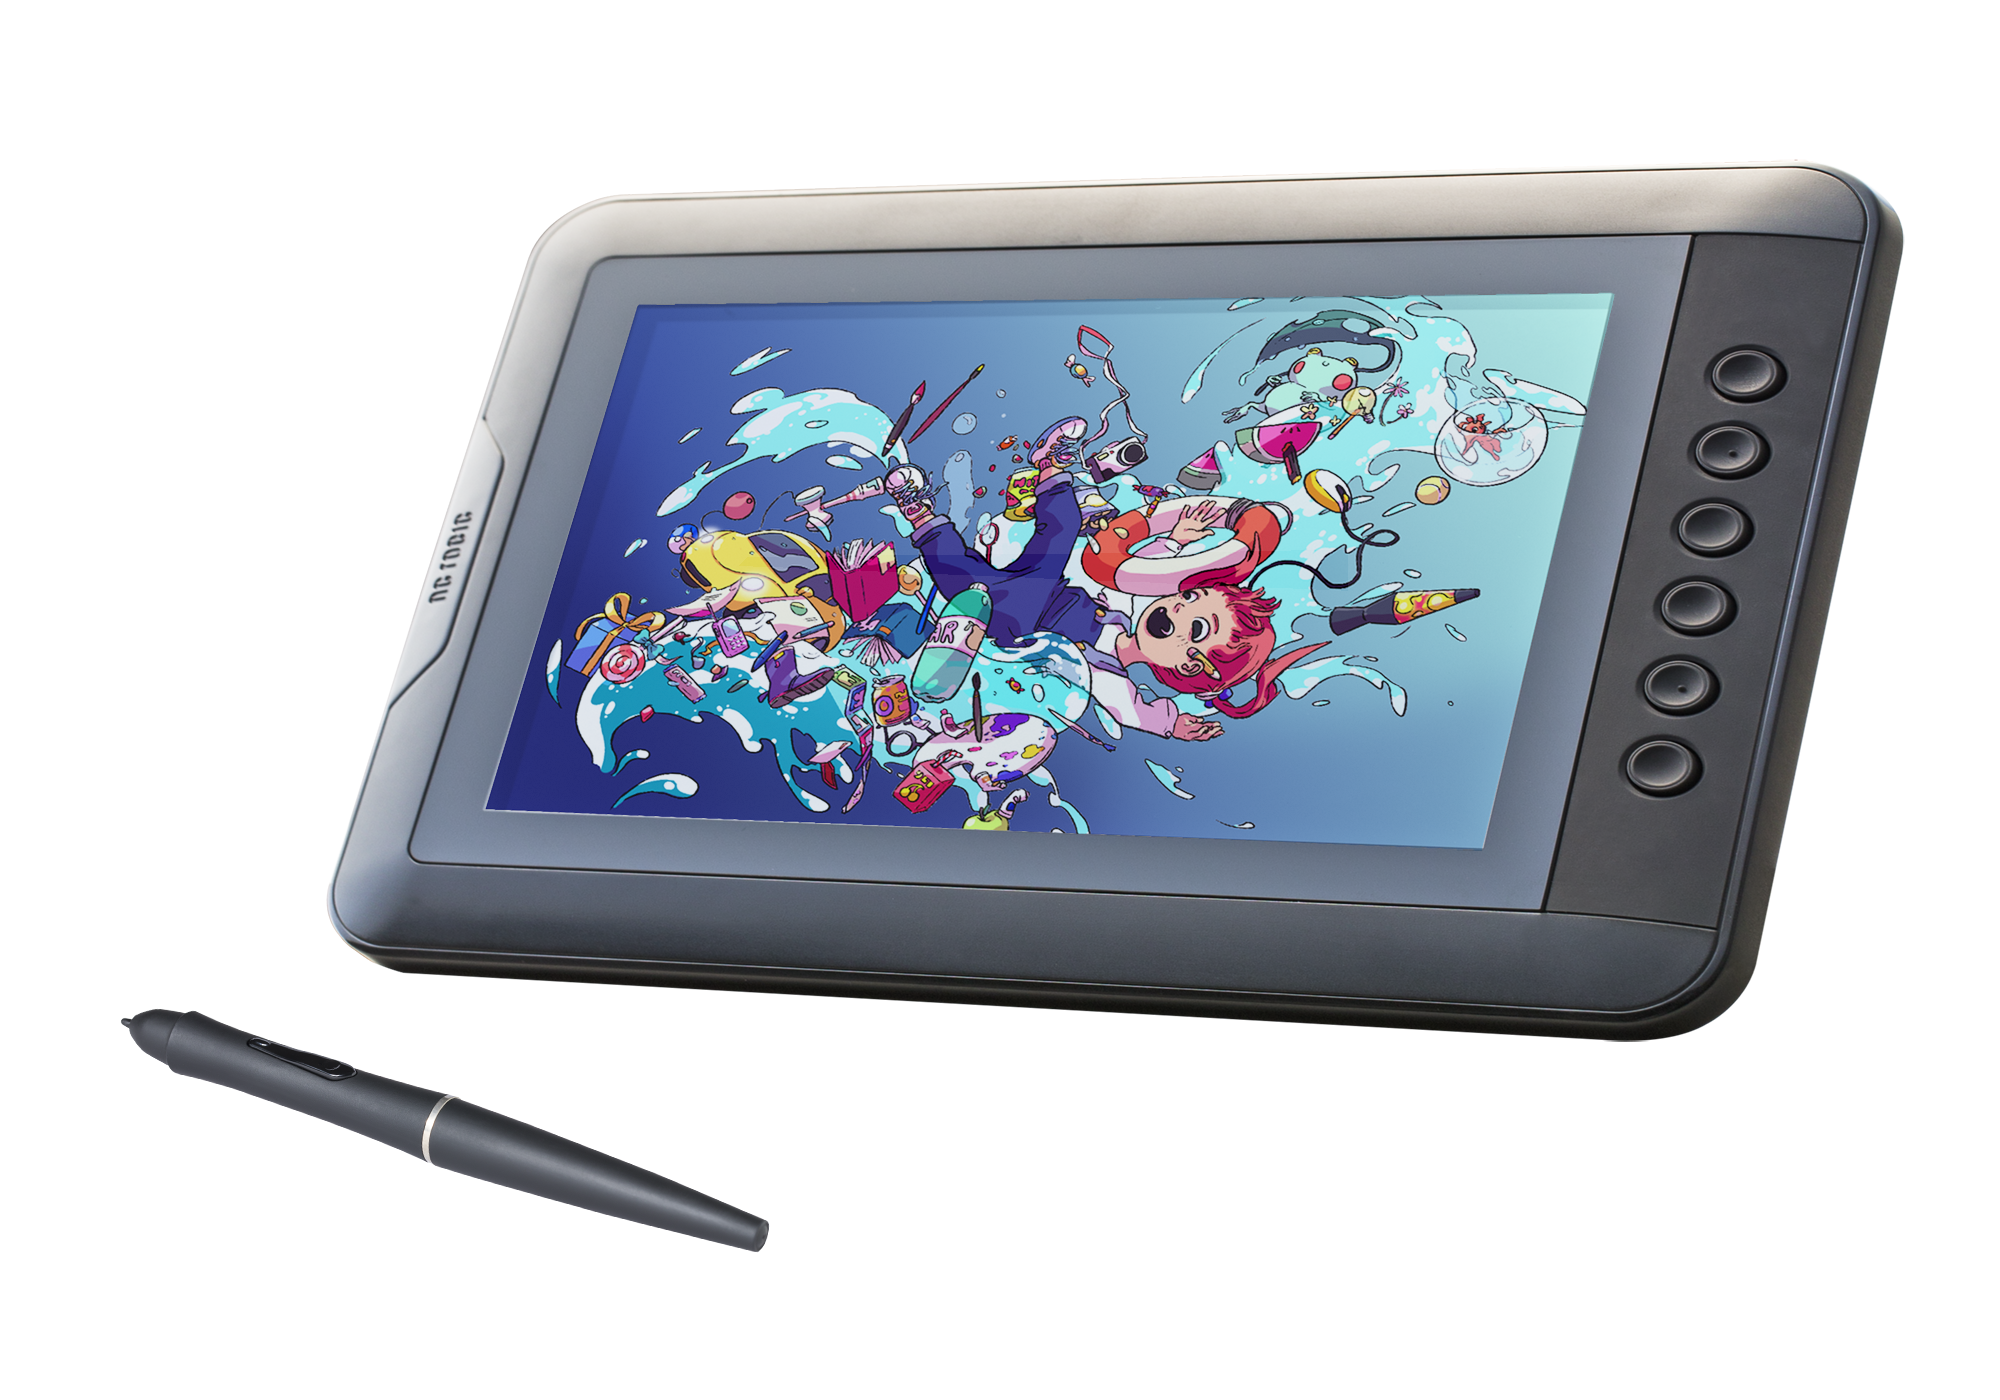 Monitor drawing pc. Artisul d tablet with